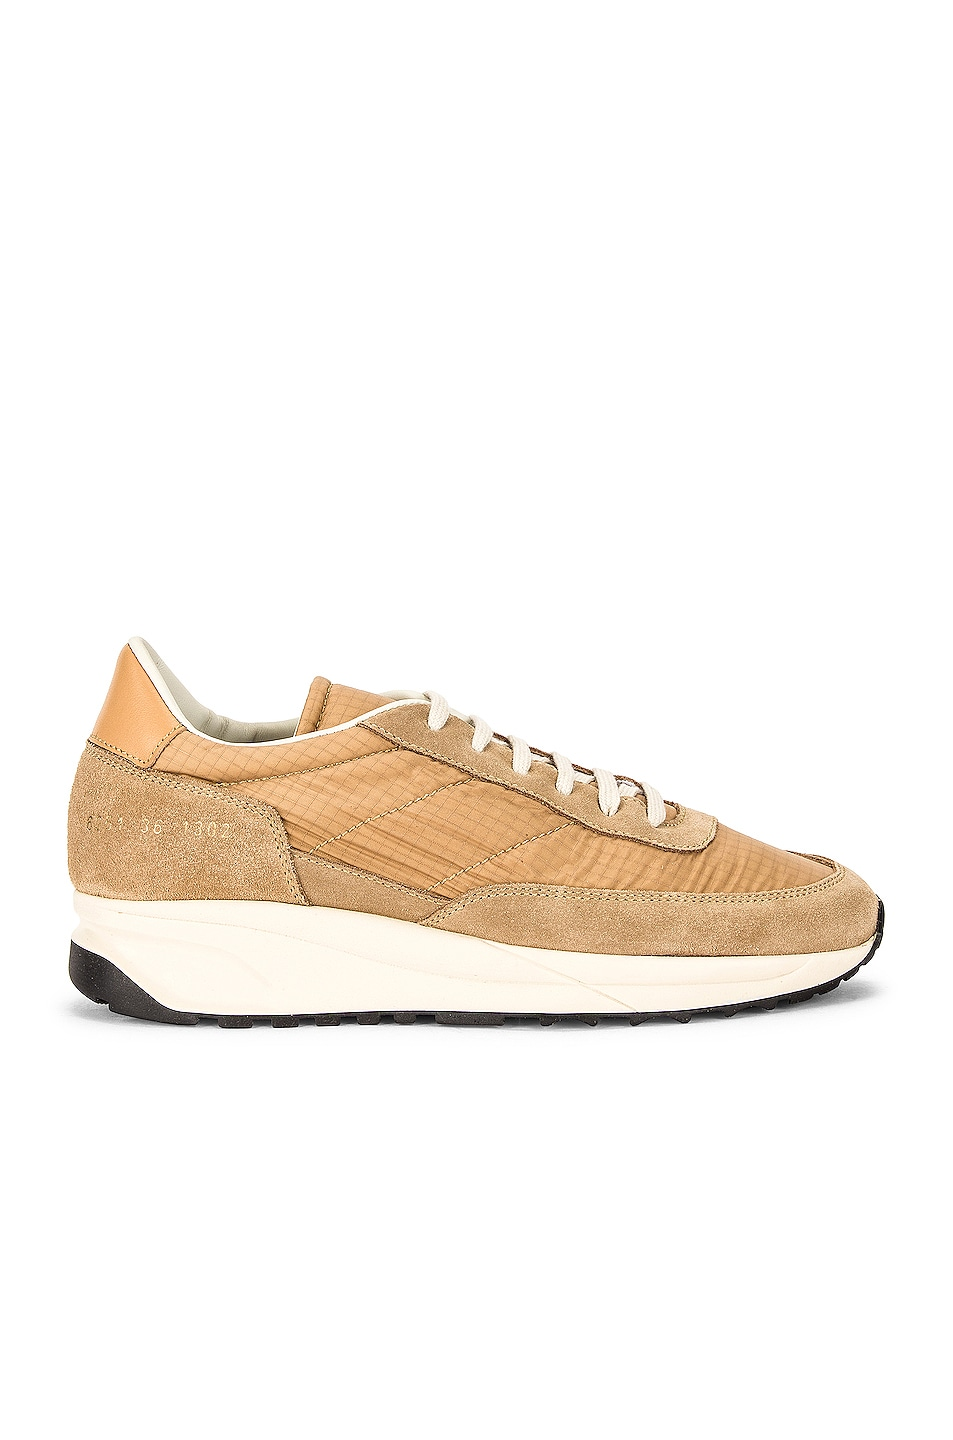 Image 1 of Common Projects Track Classic Sneaker in Tan